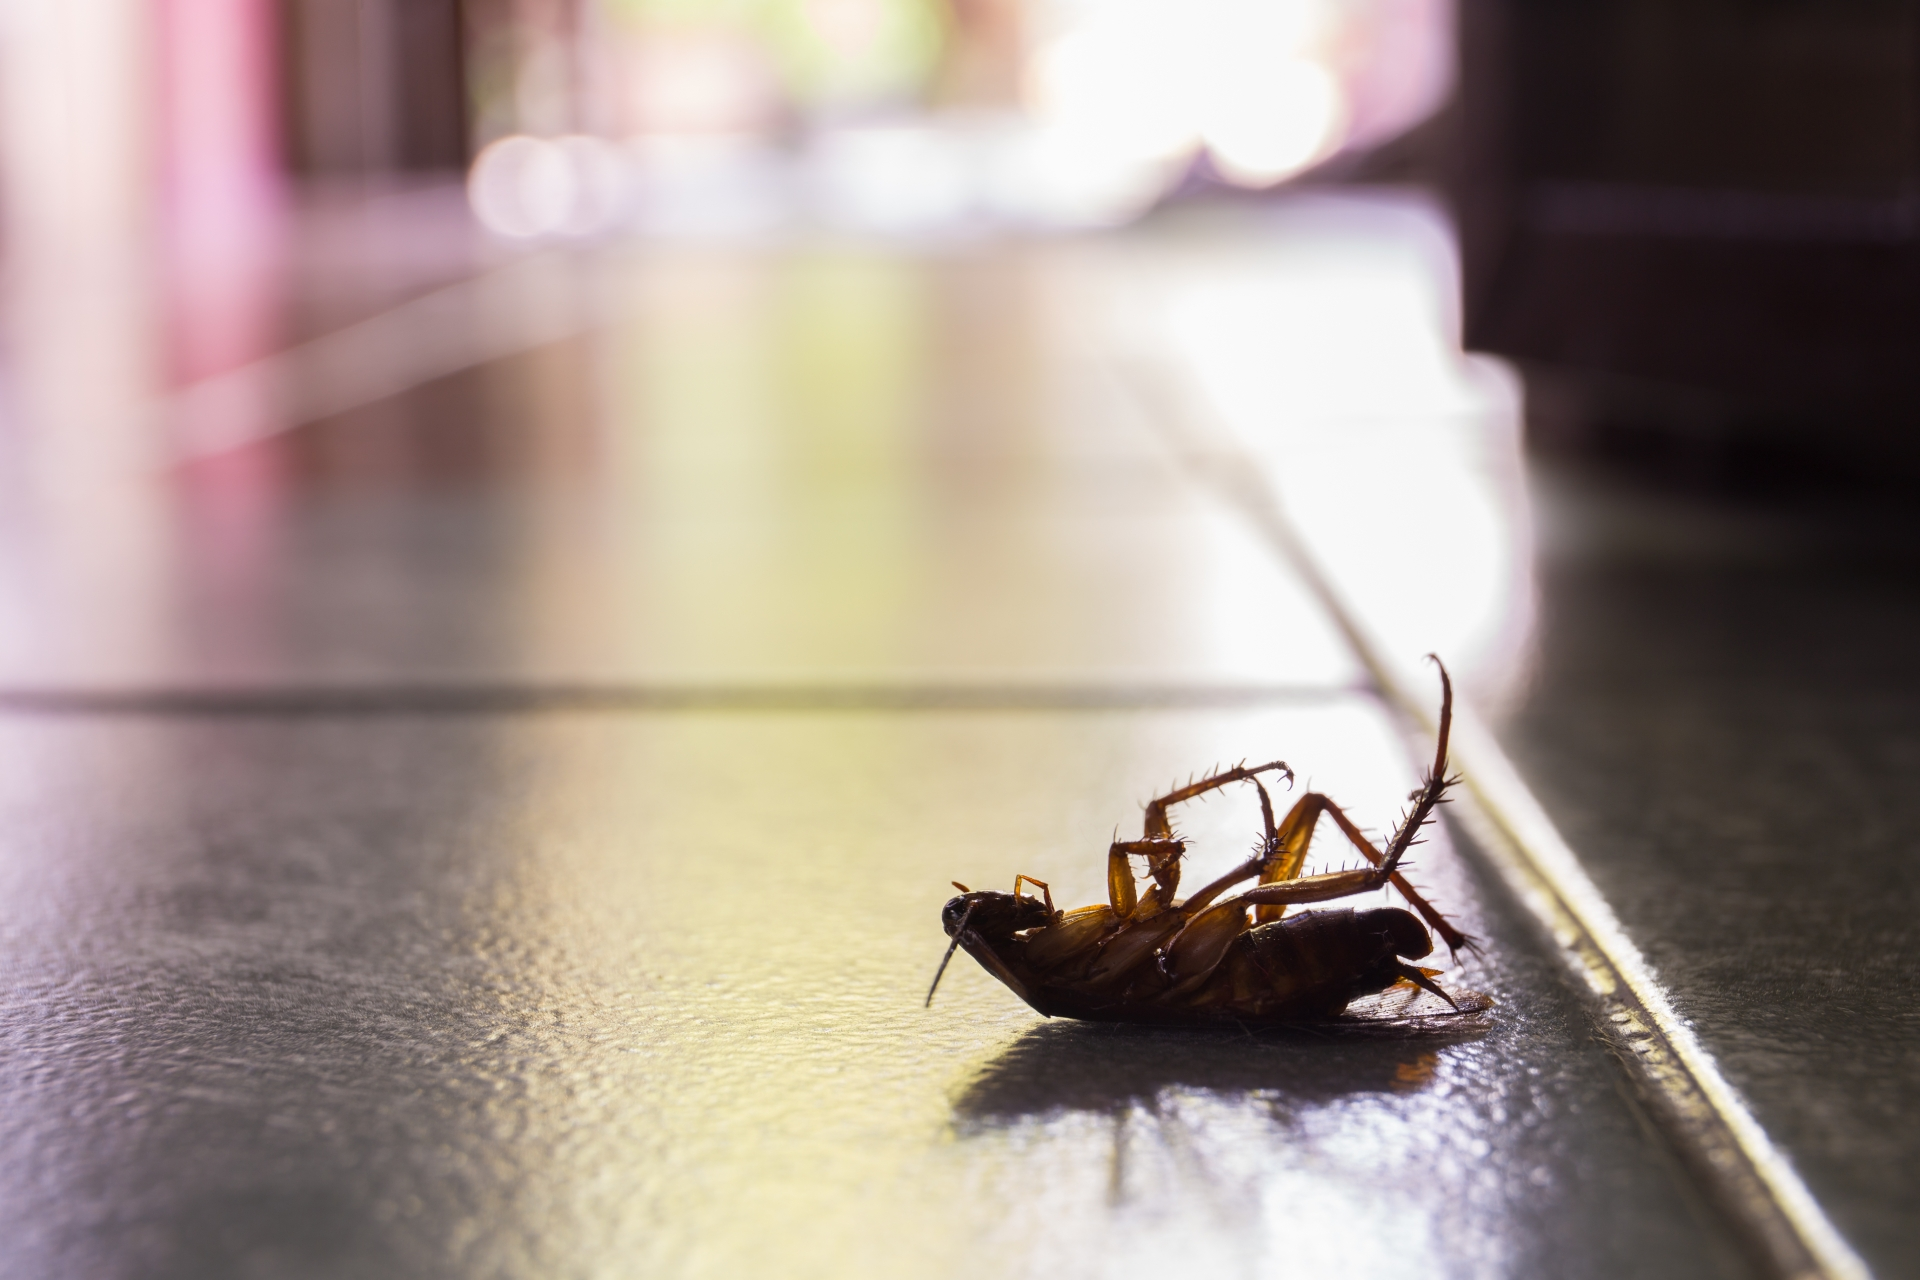 Cockroach Control, Pest Control in South Lambeth, SW8. Call Now 020 8166 9746